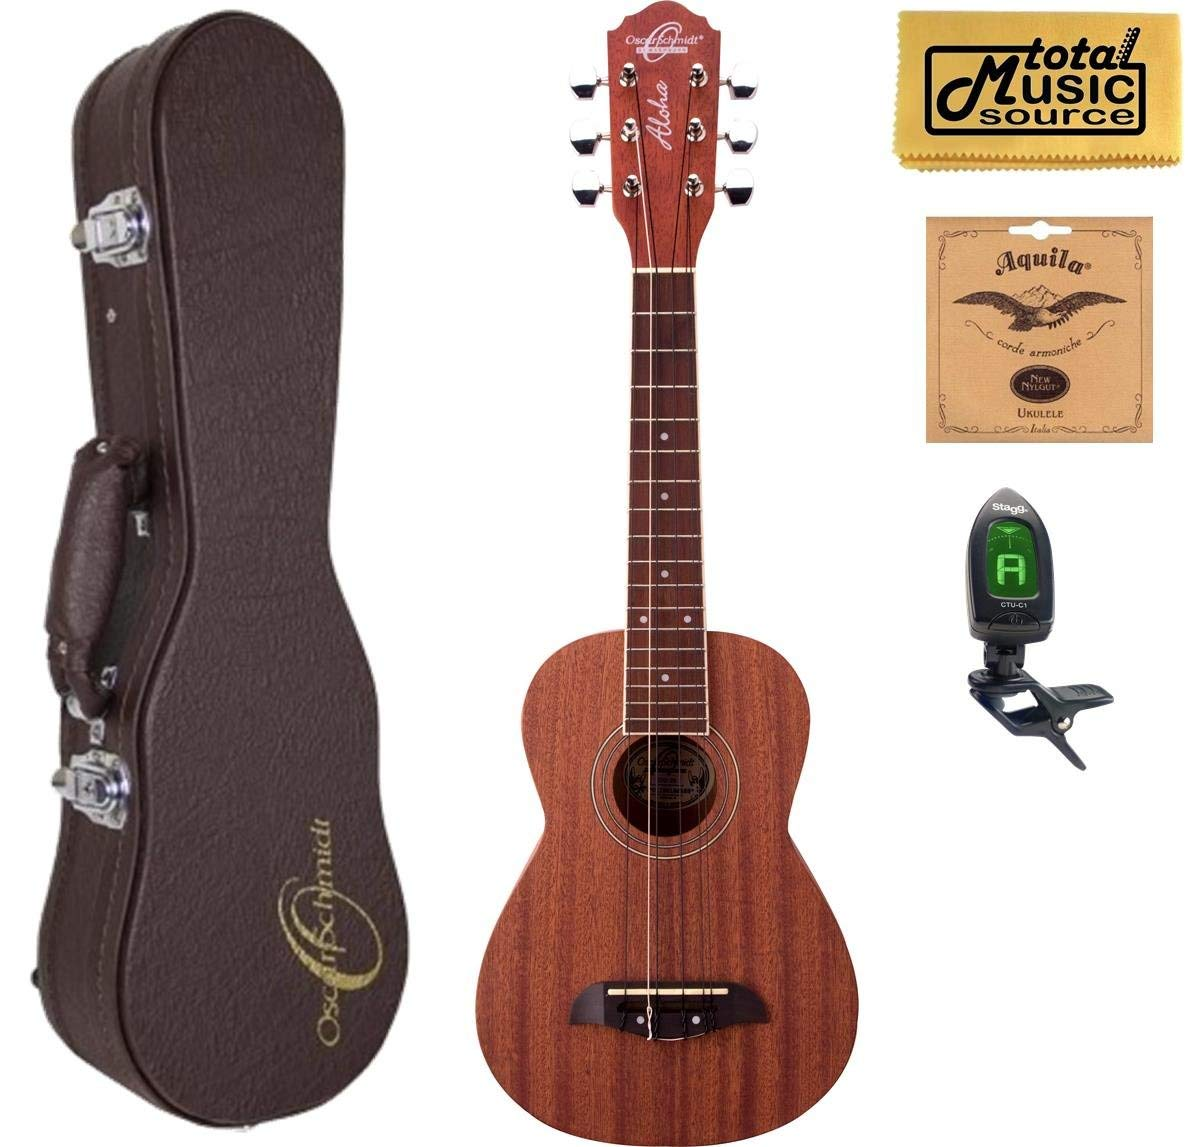 Oscar Schmidt OU26T 6-String Tenor Ukulele, Mahogany Body, Satin Finish, Includes TMS Polishing Cloth, Oscar Schmidt Hardshell Case, Profile Digital Clip-On Tuner and Extra Set of Aquila 17U Strings